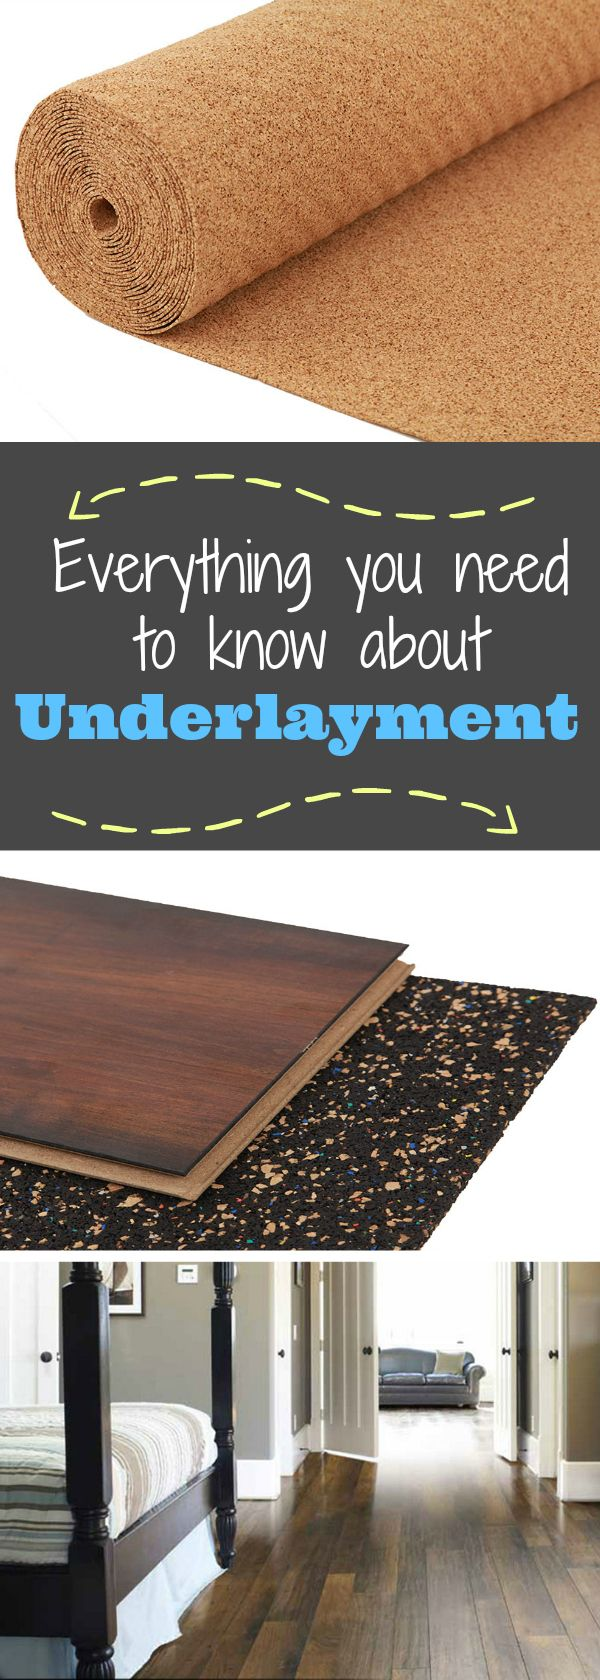 Underlayment Buying Guide Your Questions, Answered